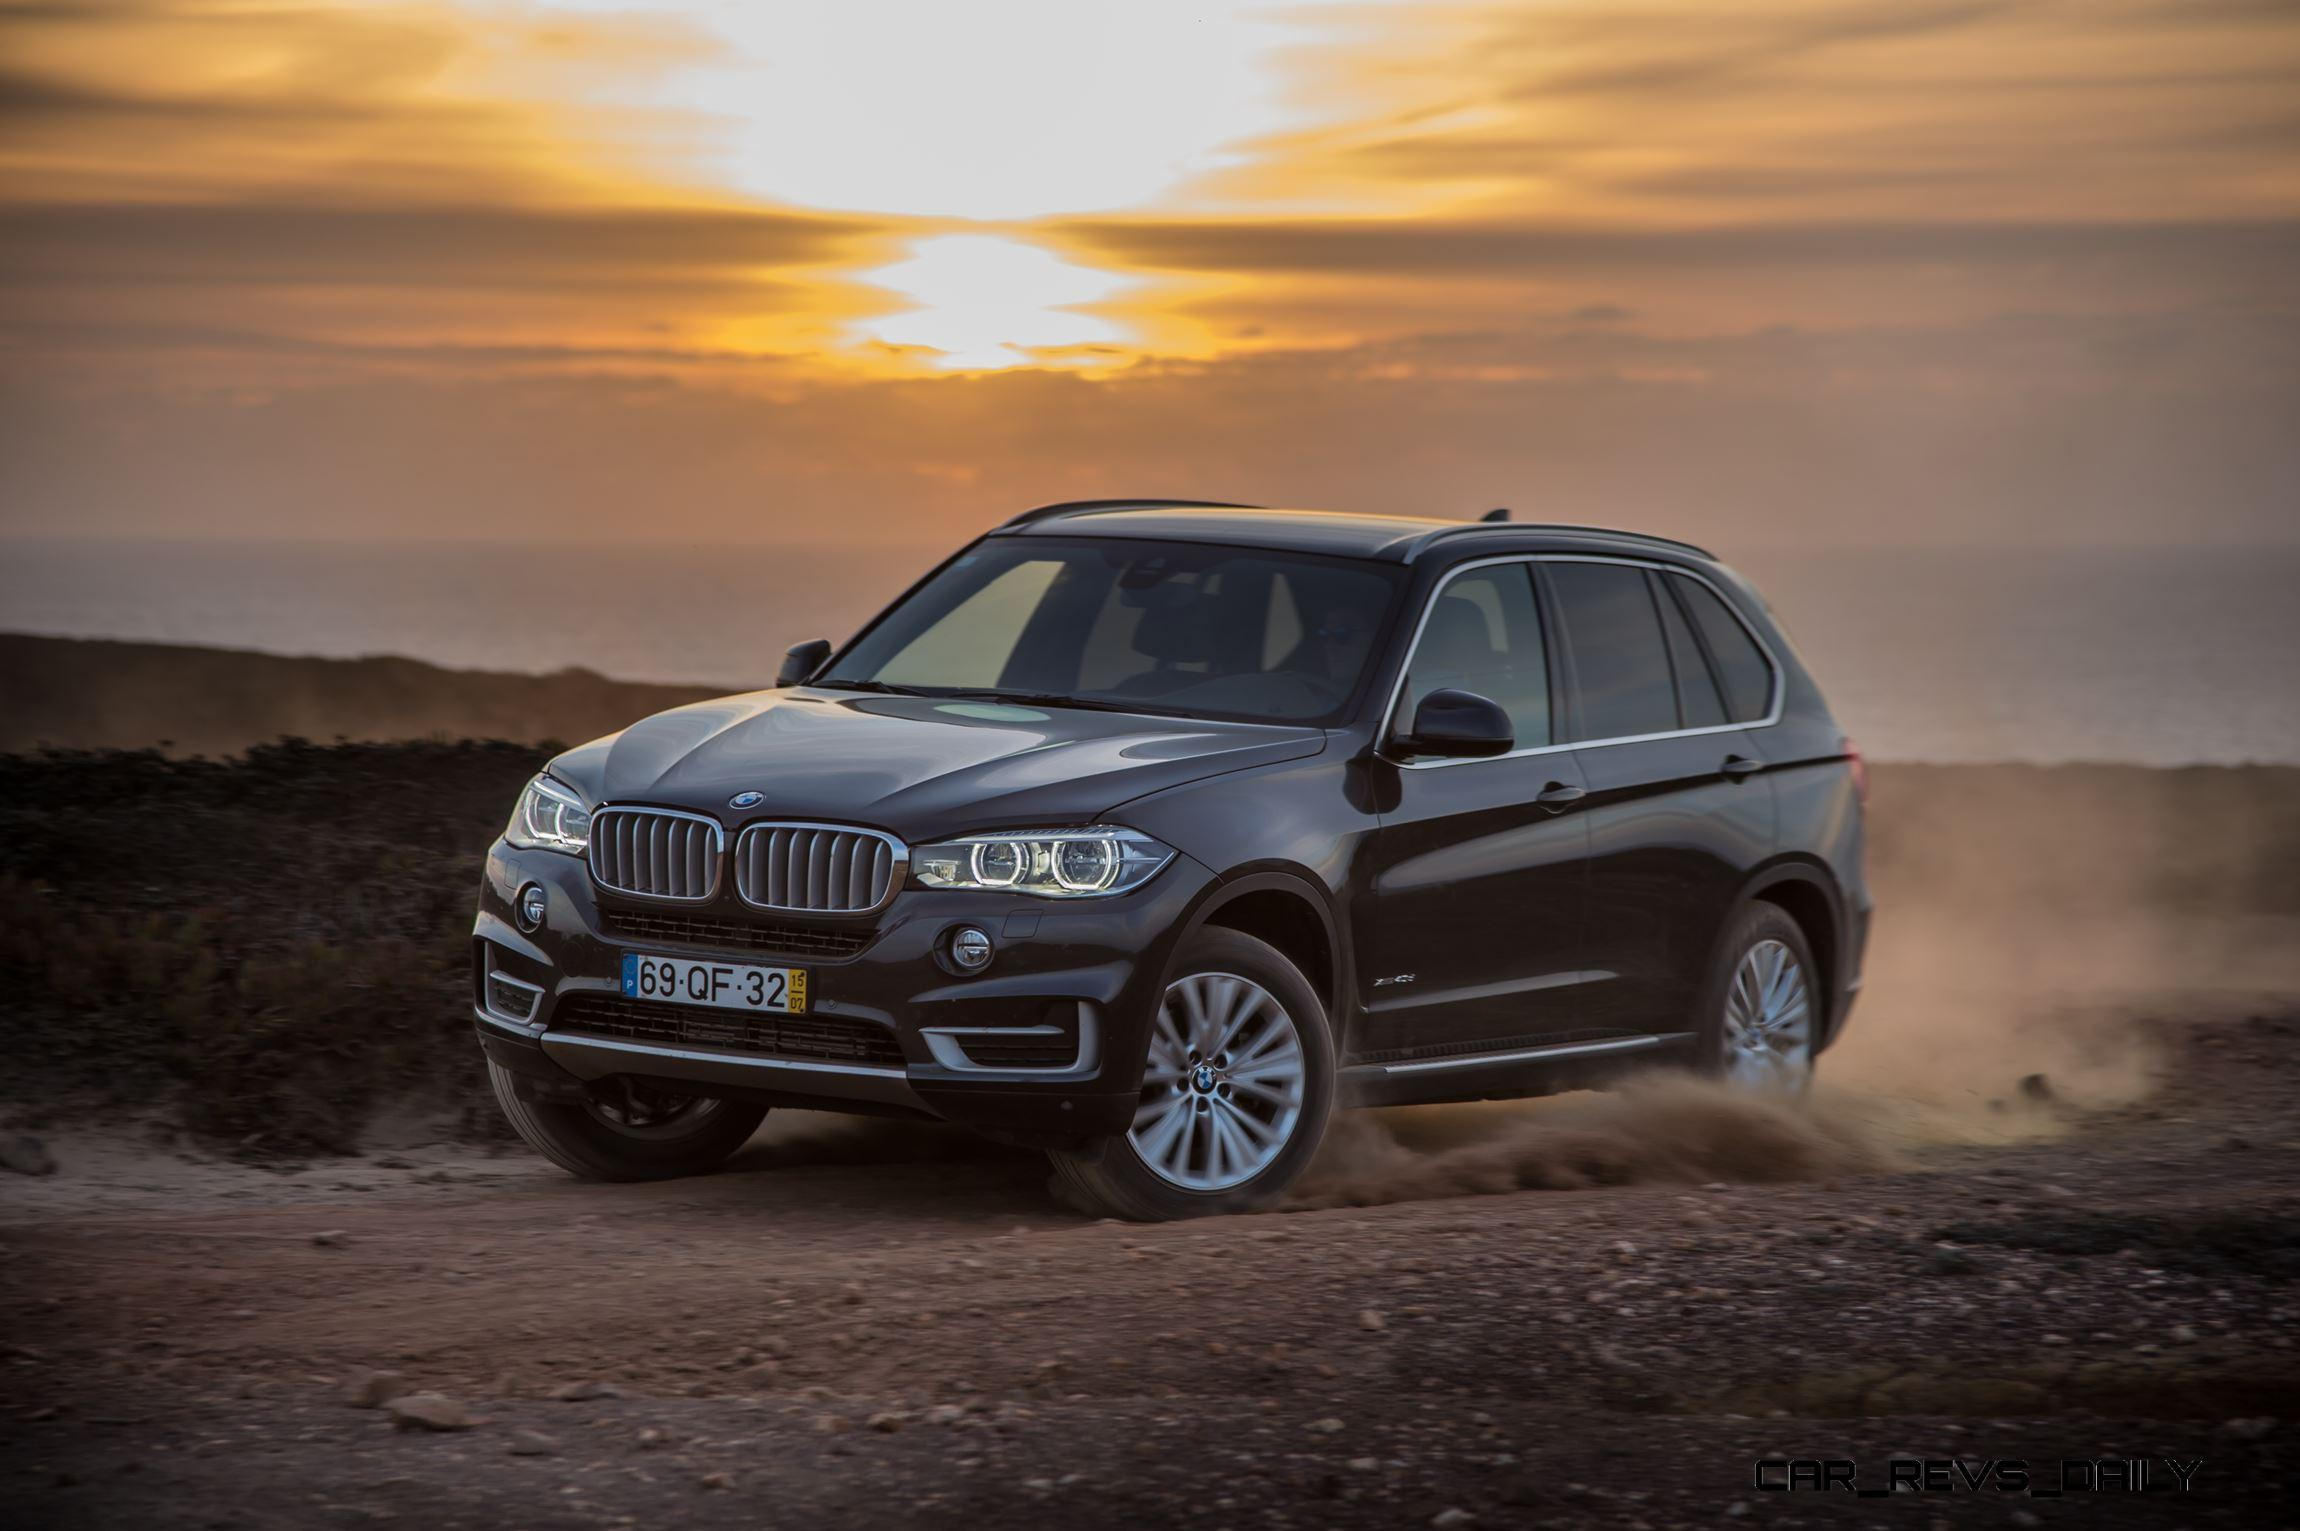 the evolution of bmw xdrive 325ix to 2016 bmw x5. Black Bedroom Furniture Sets. Home Design Ideas